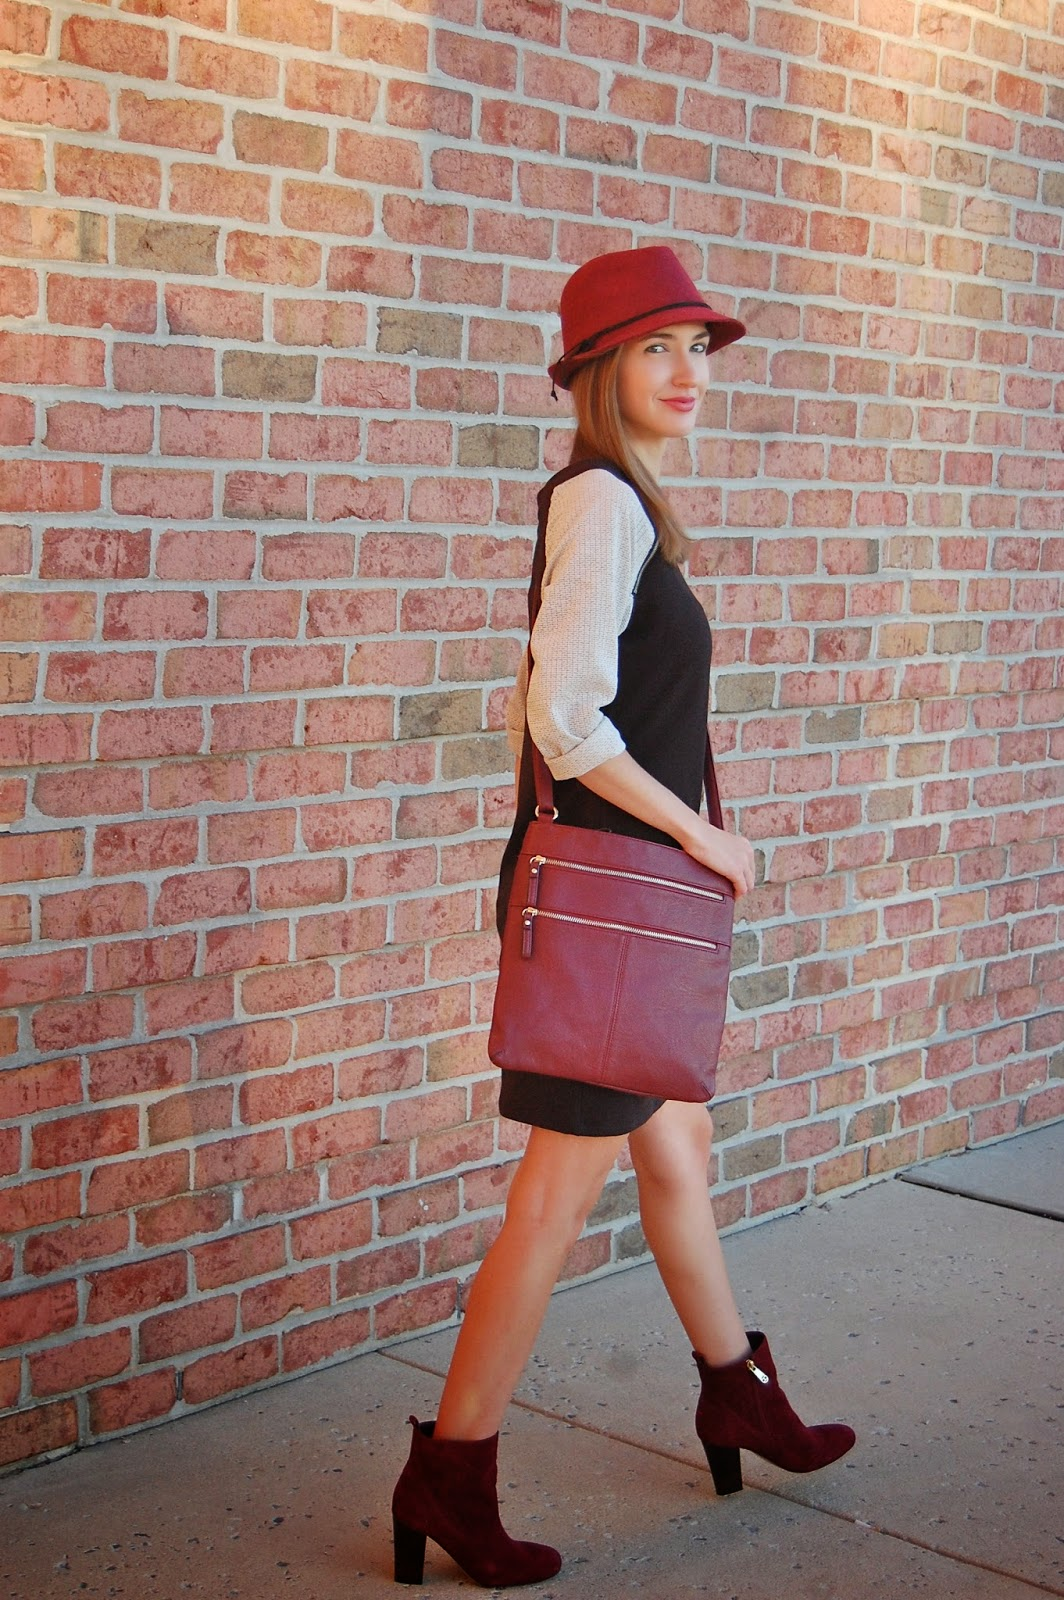 Trixxi Girl Fall Sweater Dress exclusive by Charlotte Russe, Oxblood Suede Booties, Oxblood Fedora